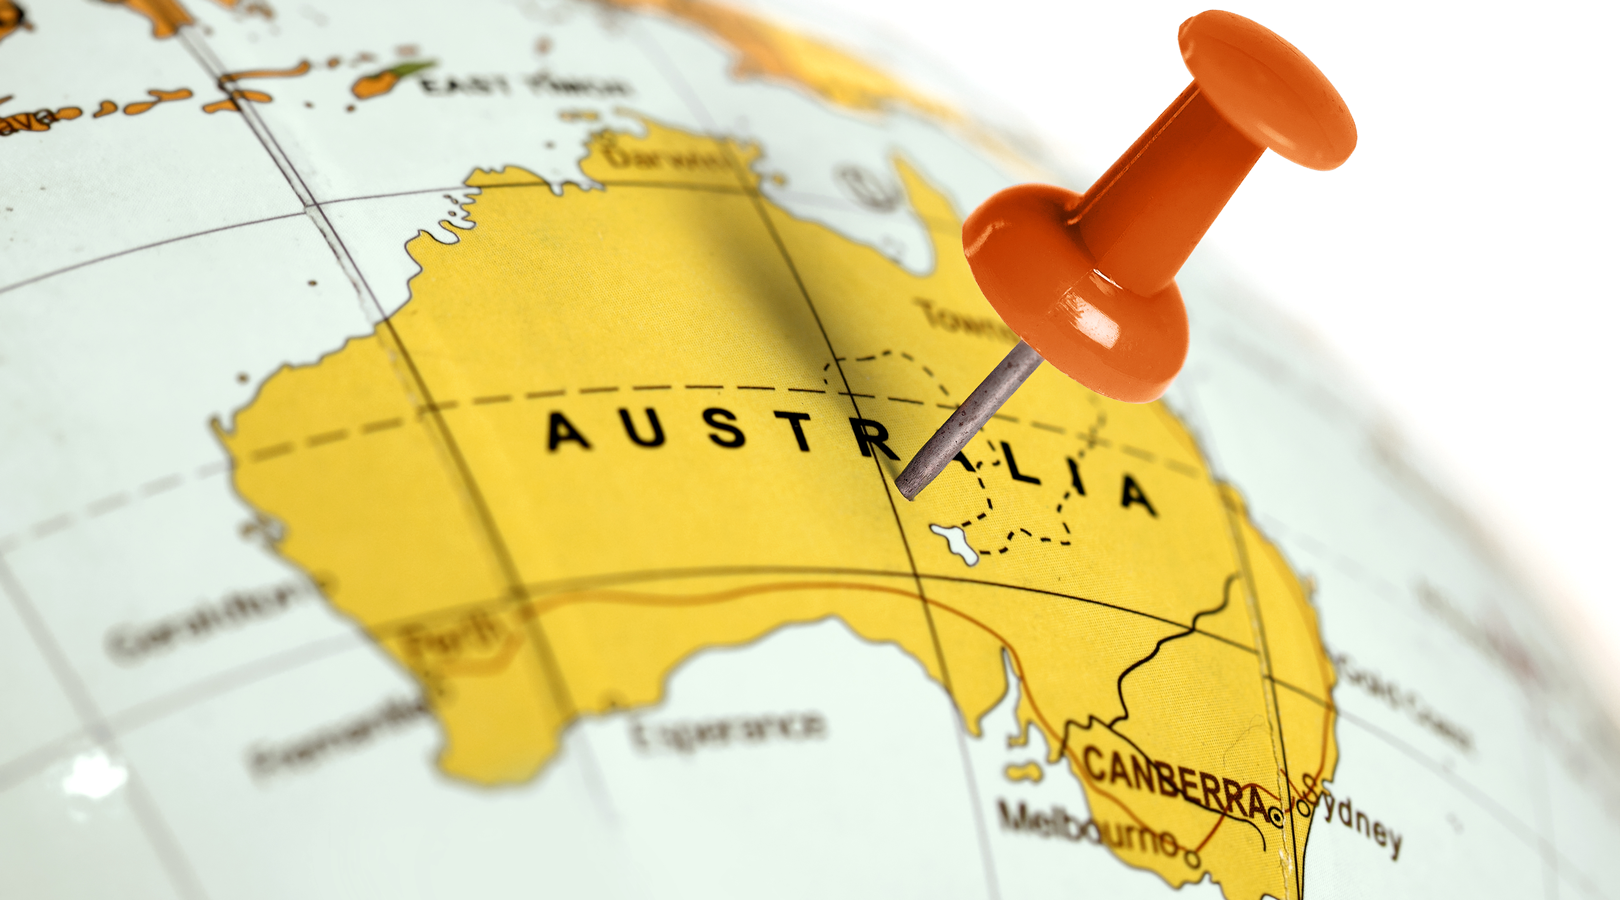 What are the last posting dates to Australia for Christmas 2019?